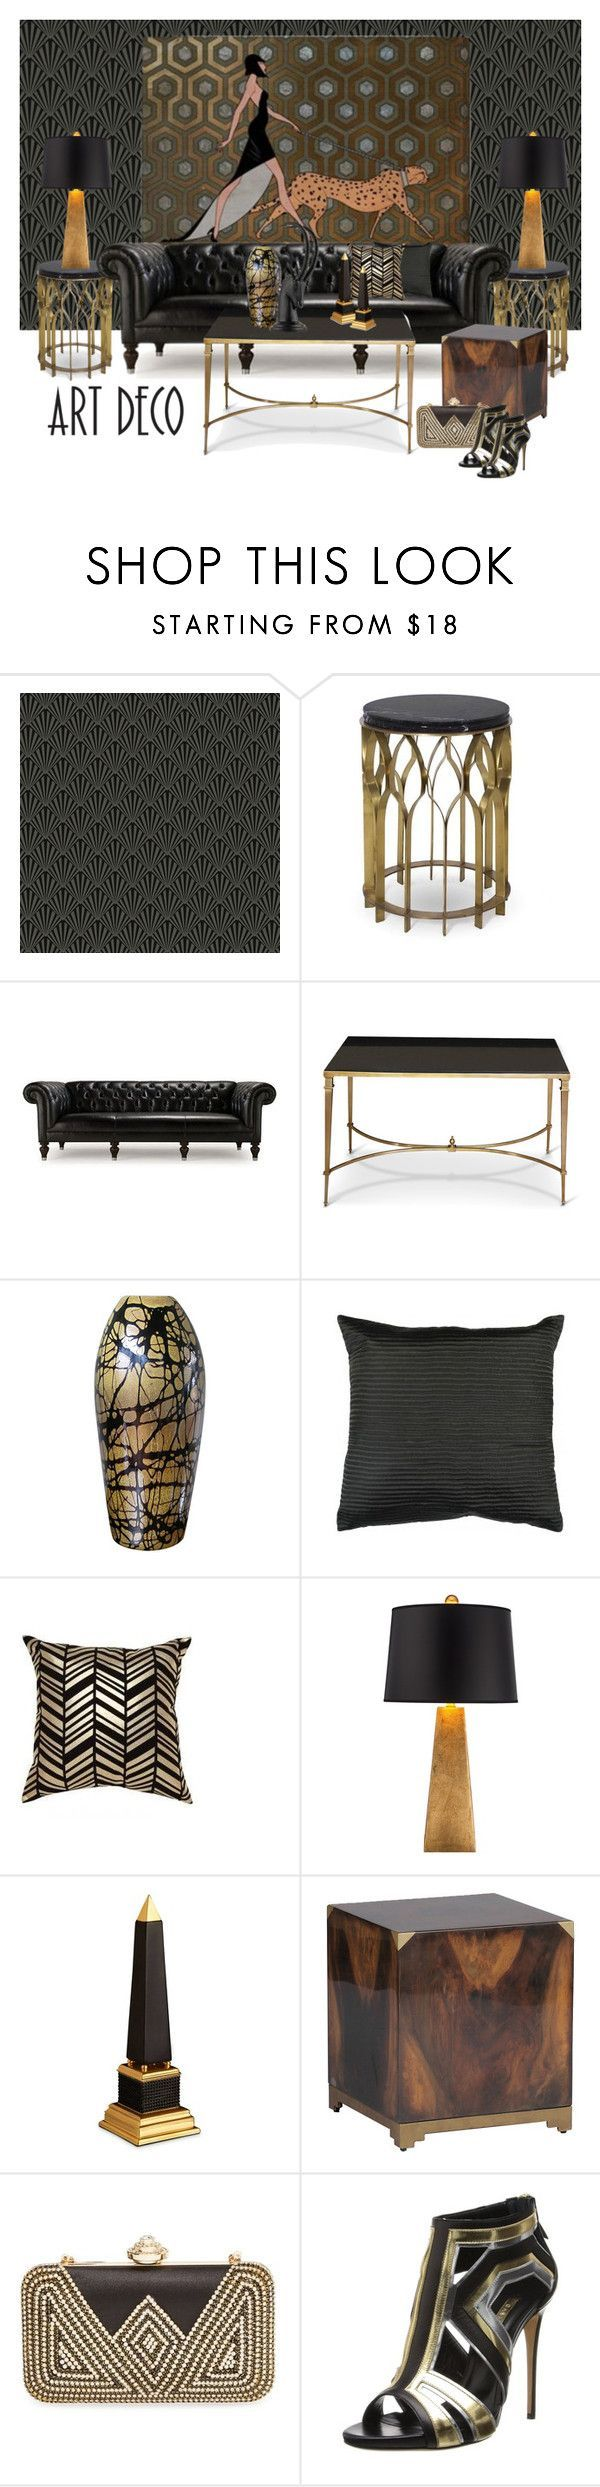 Art Deco...All the very best for 2015 Polyfriends by gloriettequartet on Polyvore featuring interior, interiors, interior design, home, home decor, interior decorating, Mitchell Gold + Bob Williams, Possini Euro Design, Today Interiors and L'Objet #artdecofurniture